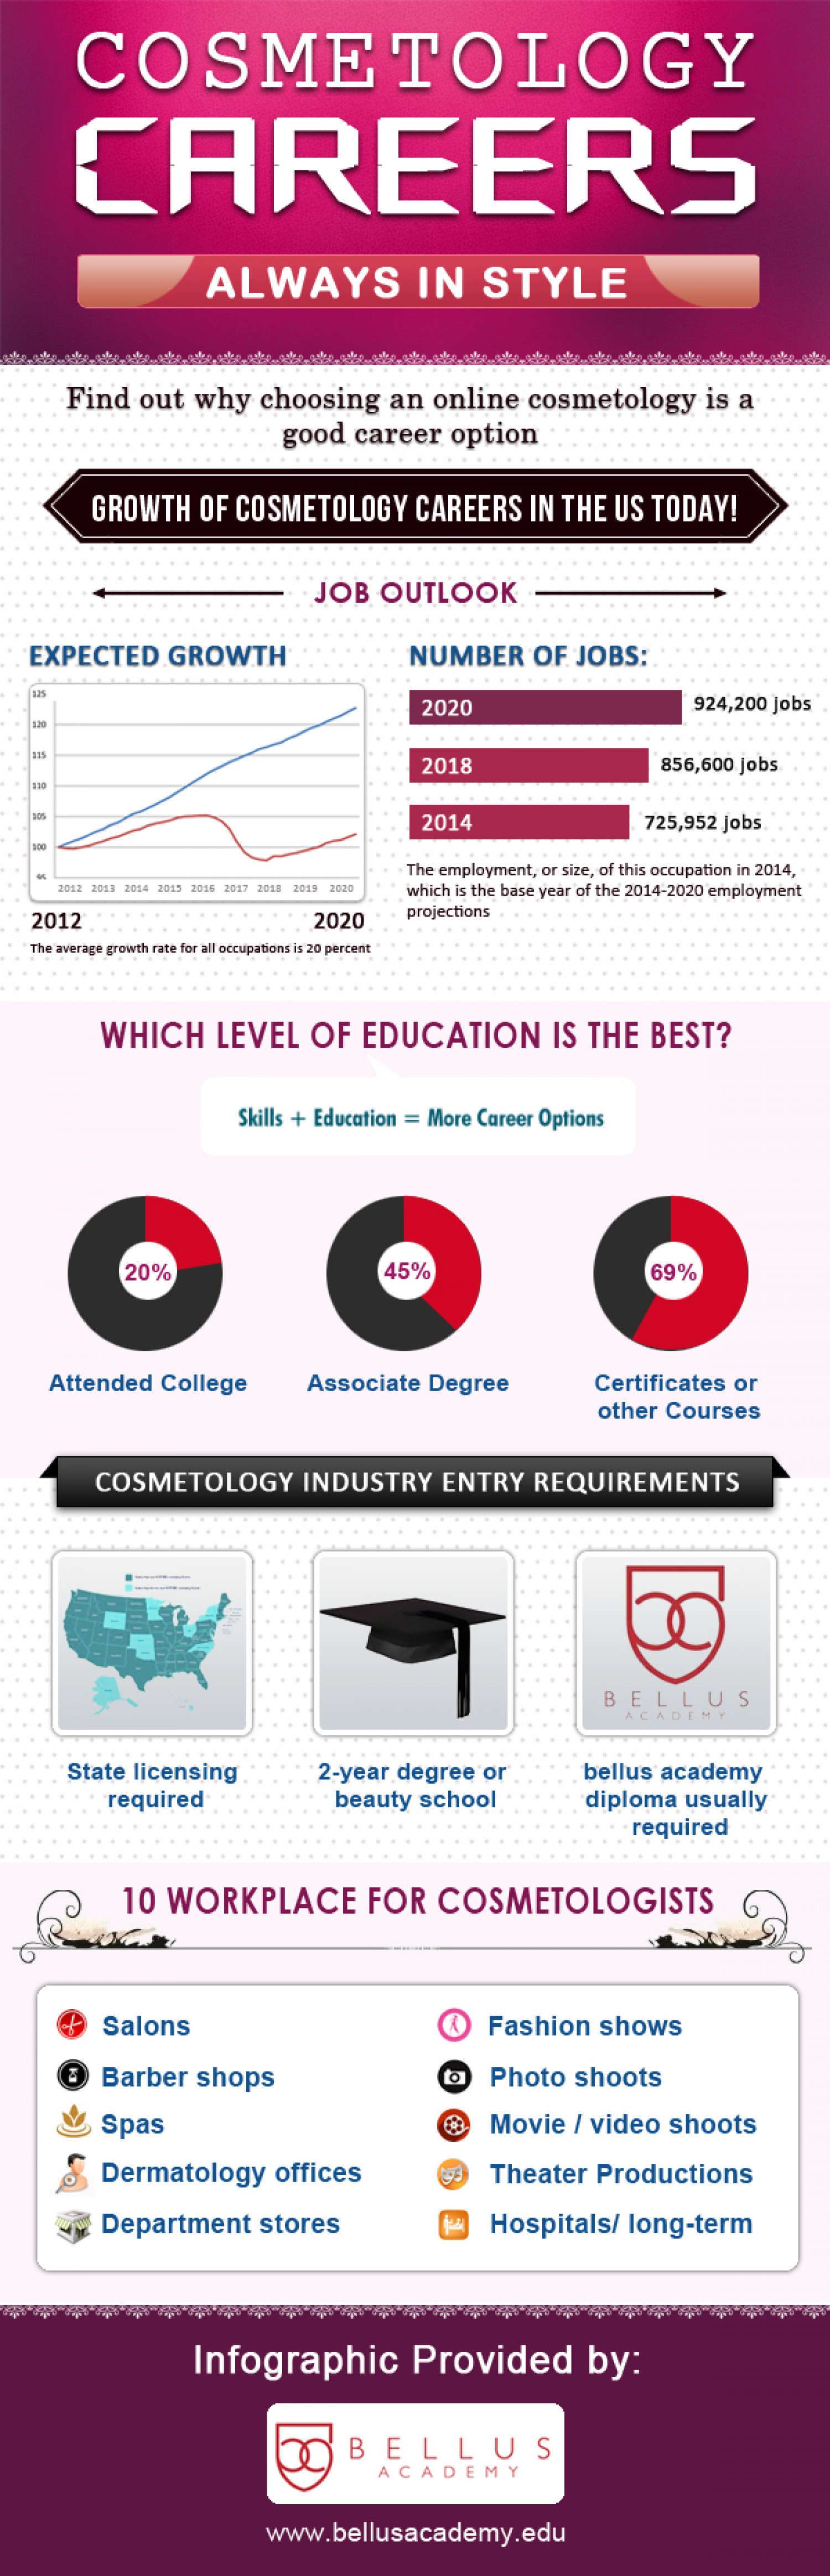 Cosmetology Careers Infographic